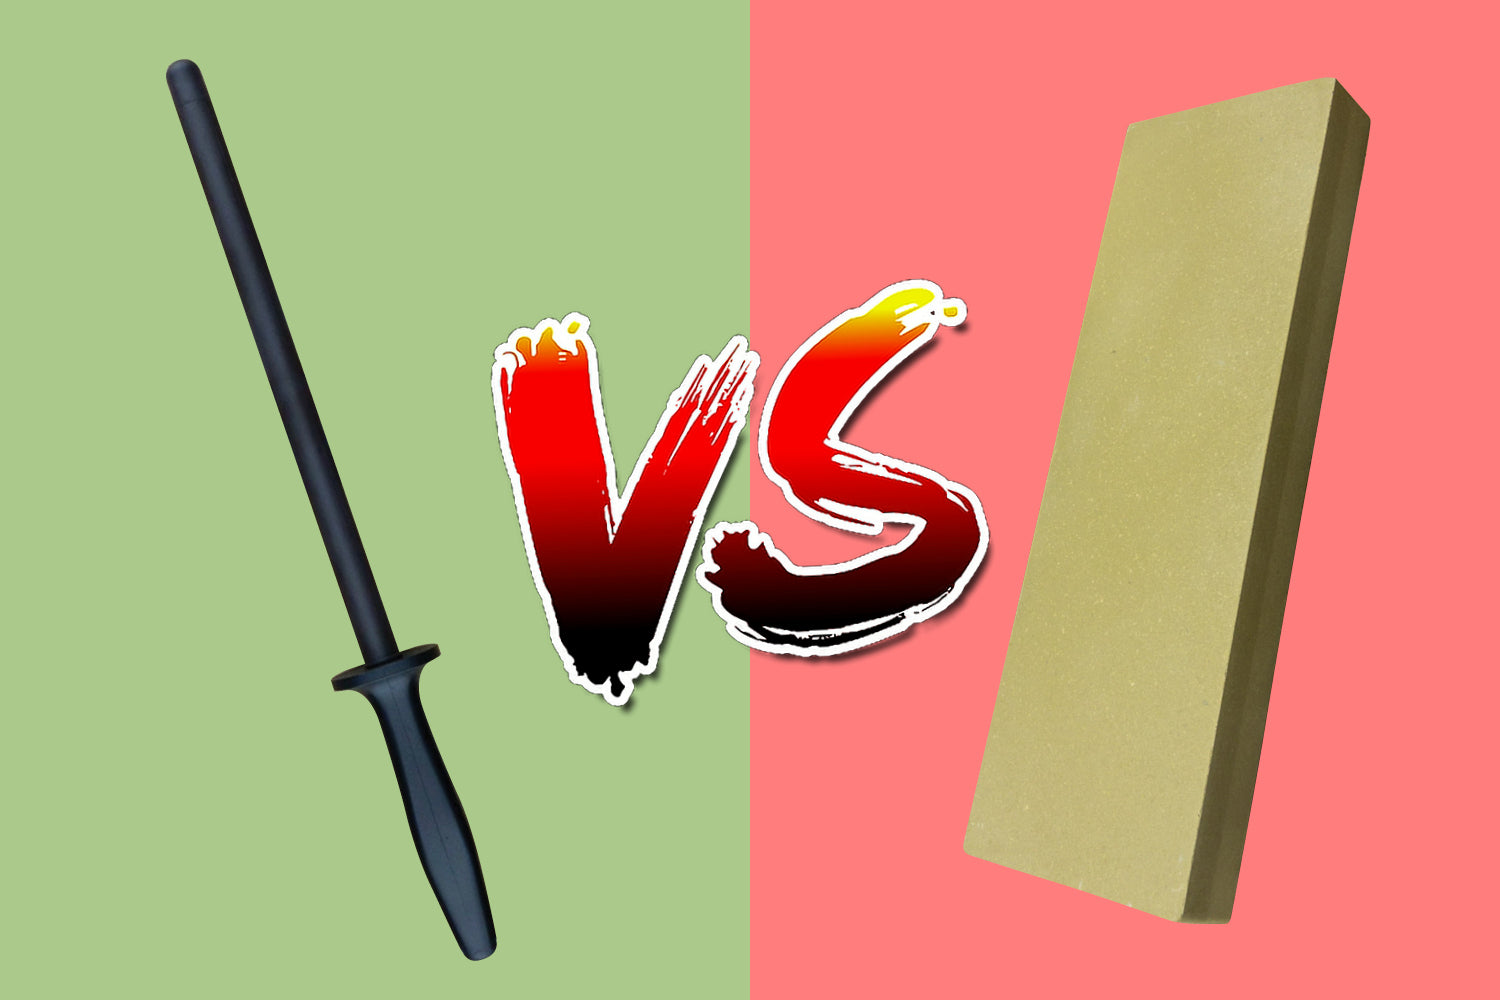 Honing Your Knife v.s. Sharpening Your Knife